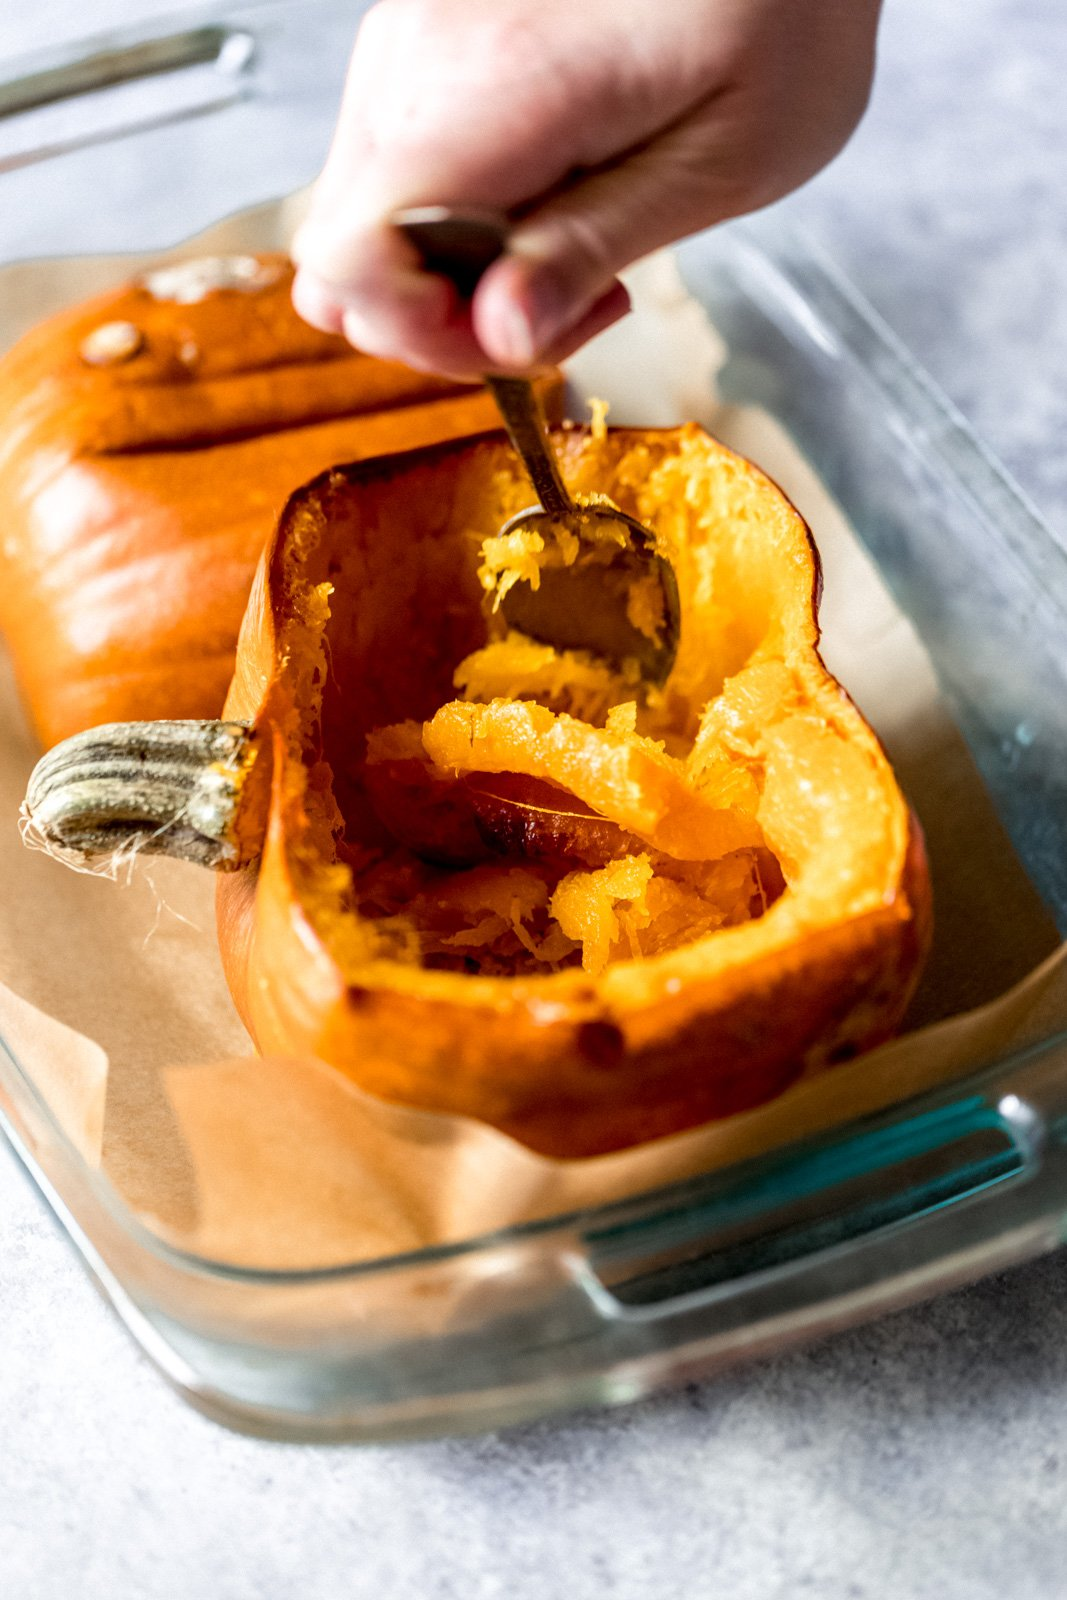 hand scooping out the inside of half of a cooked pumpkin in a glass baking dish